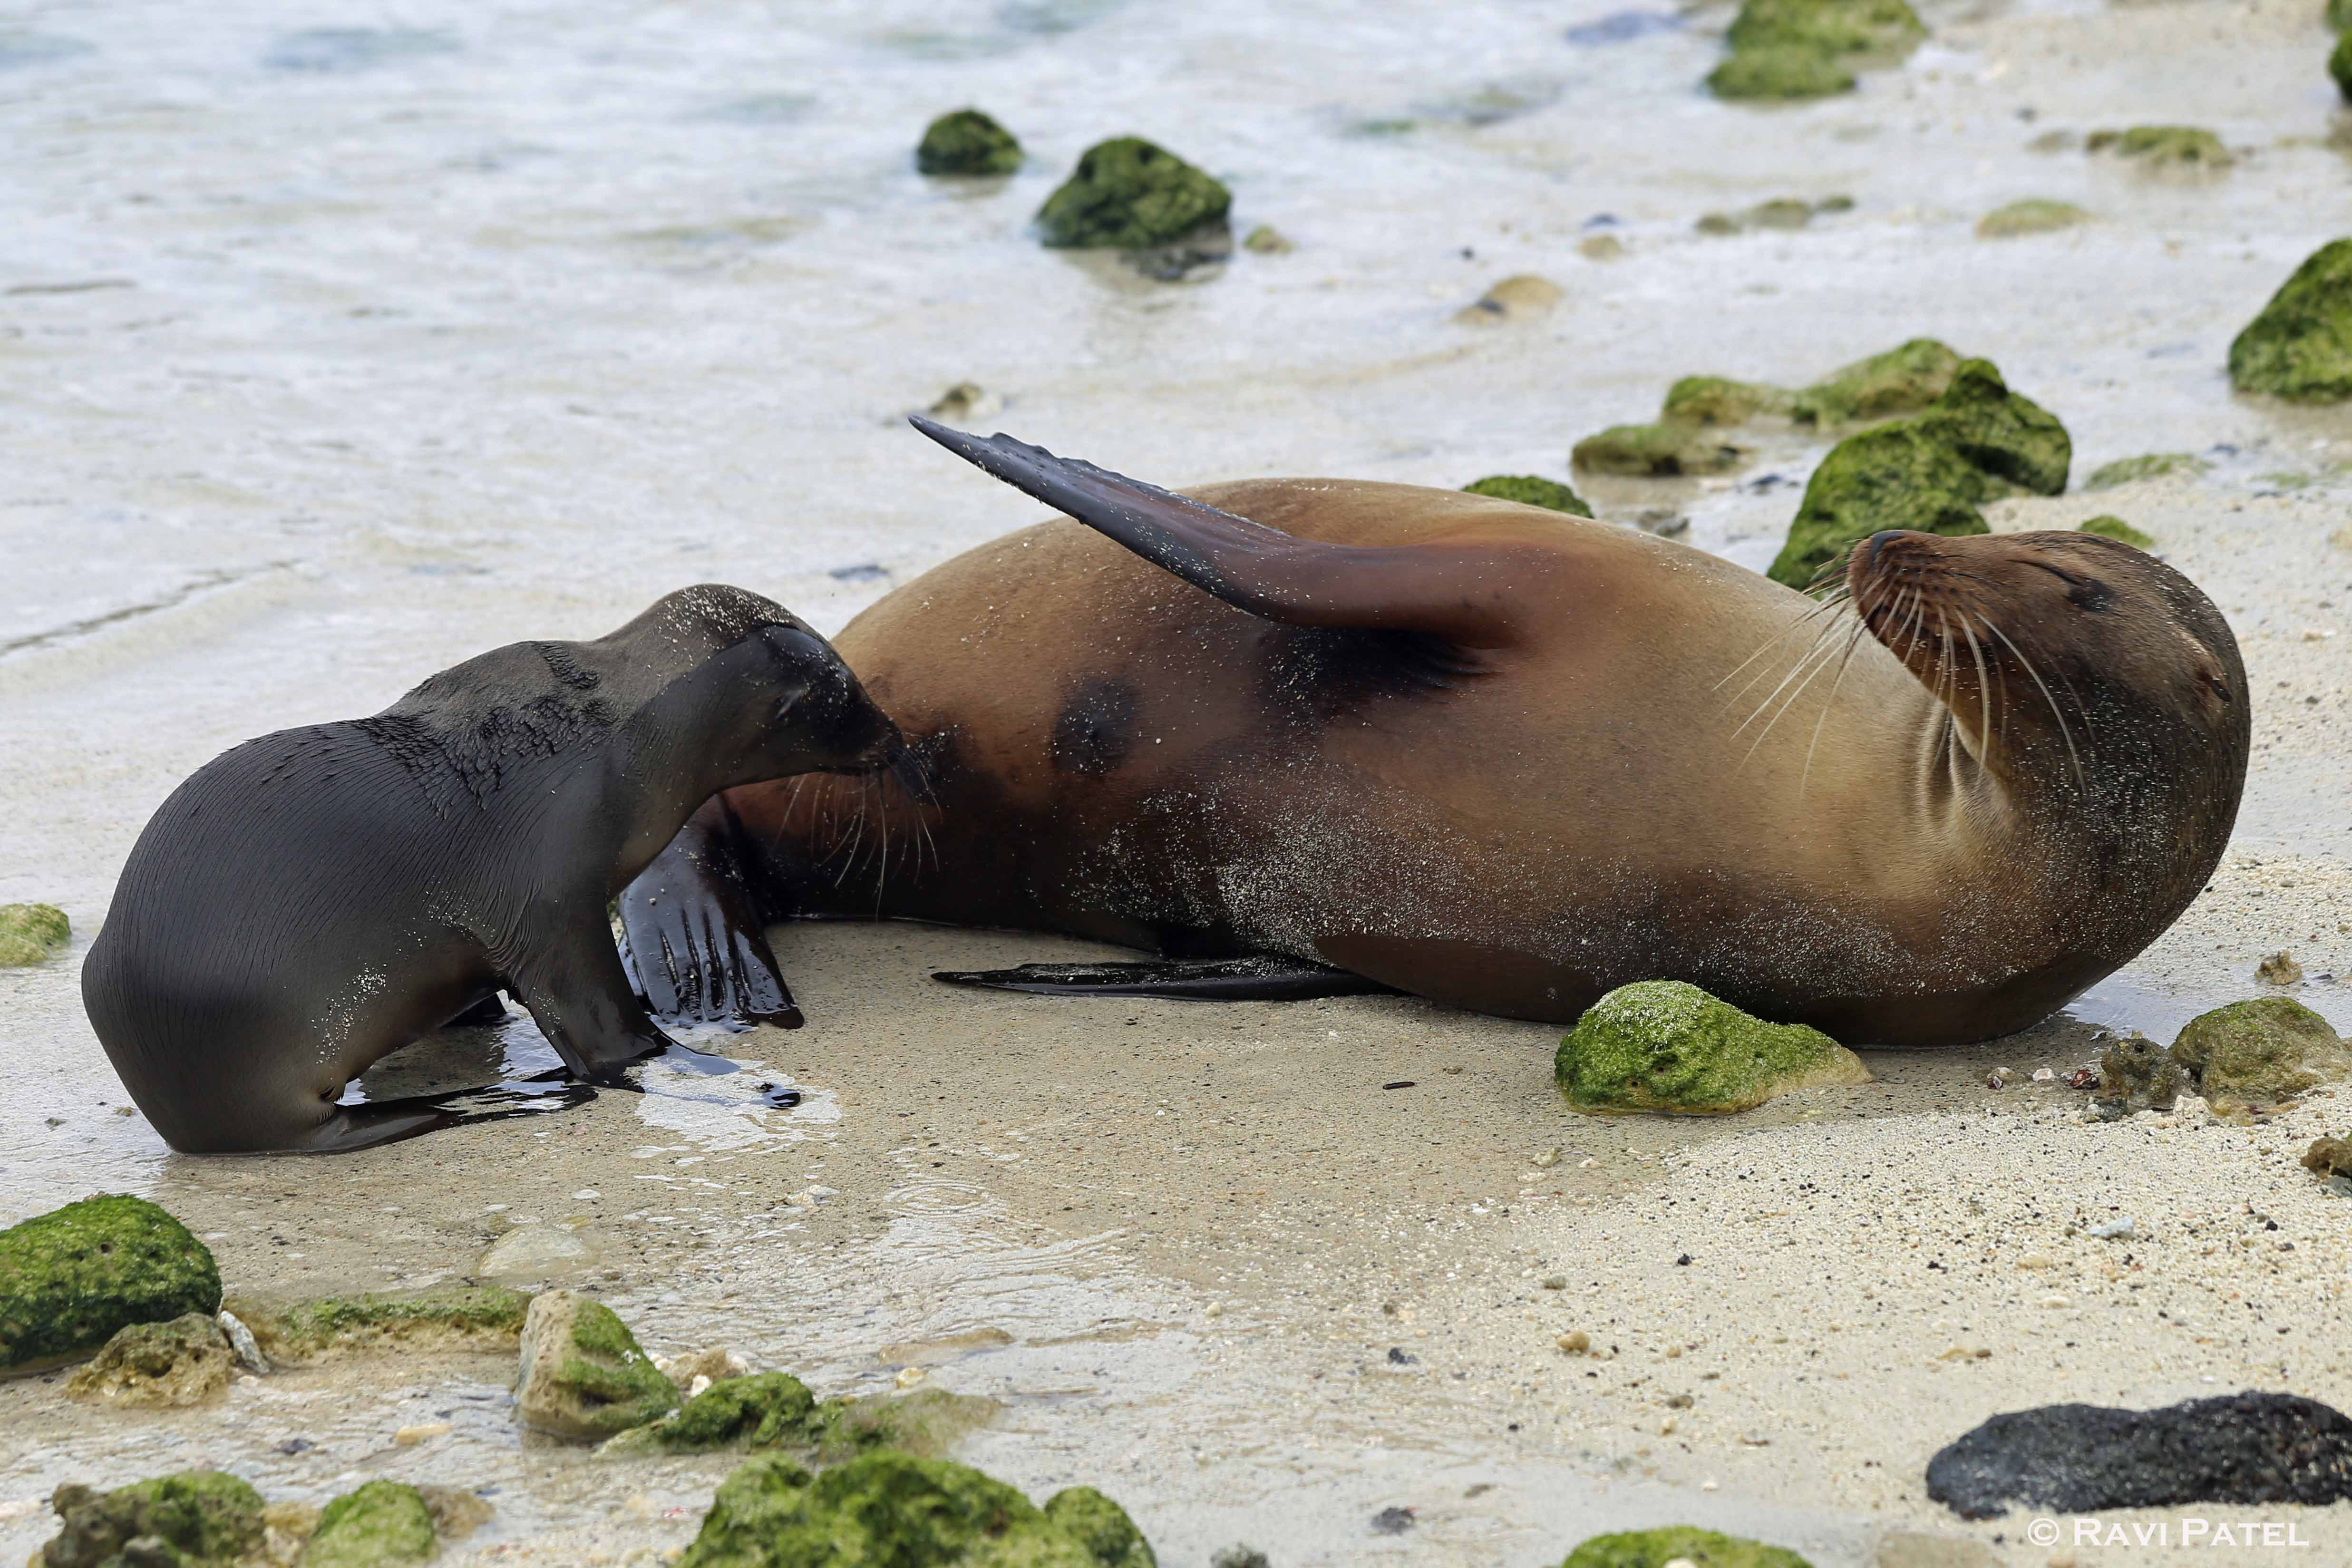 Galapagos Sea Lions – Feeding Pose | Photos by Ravi